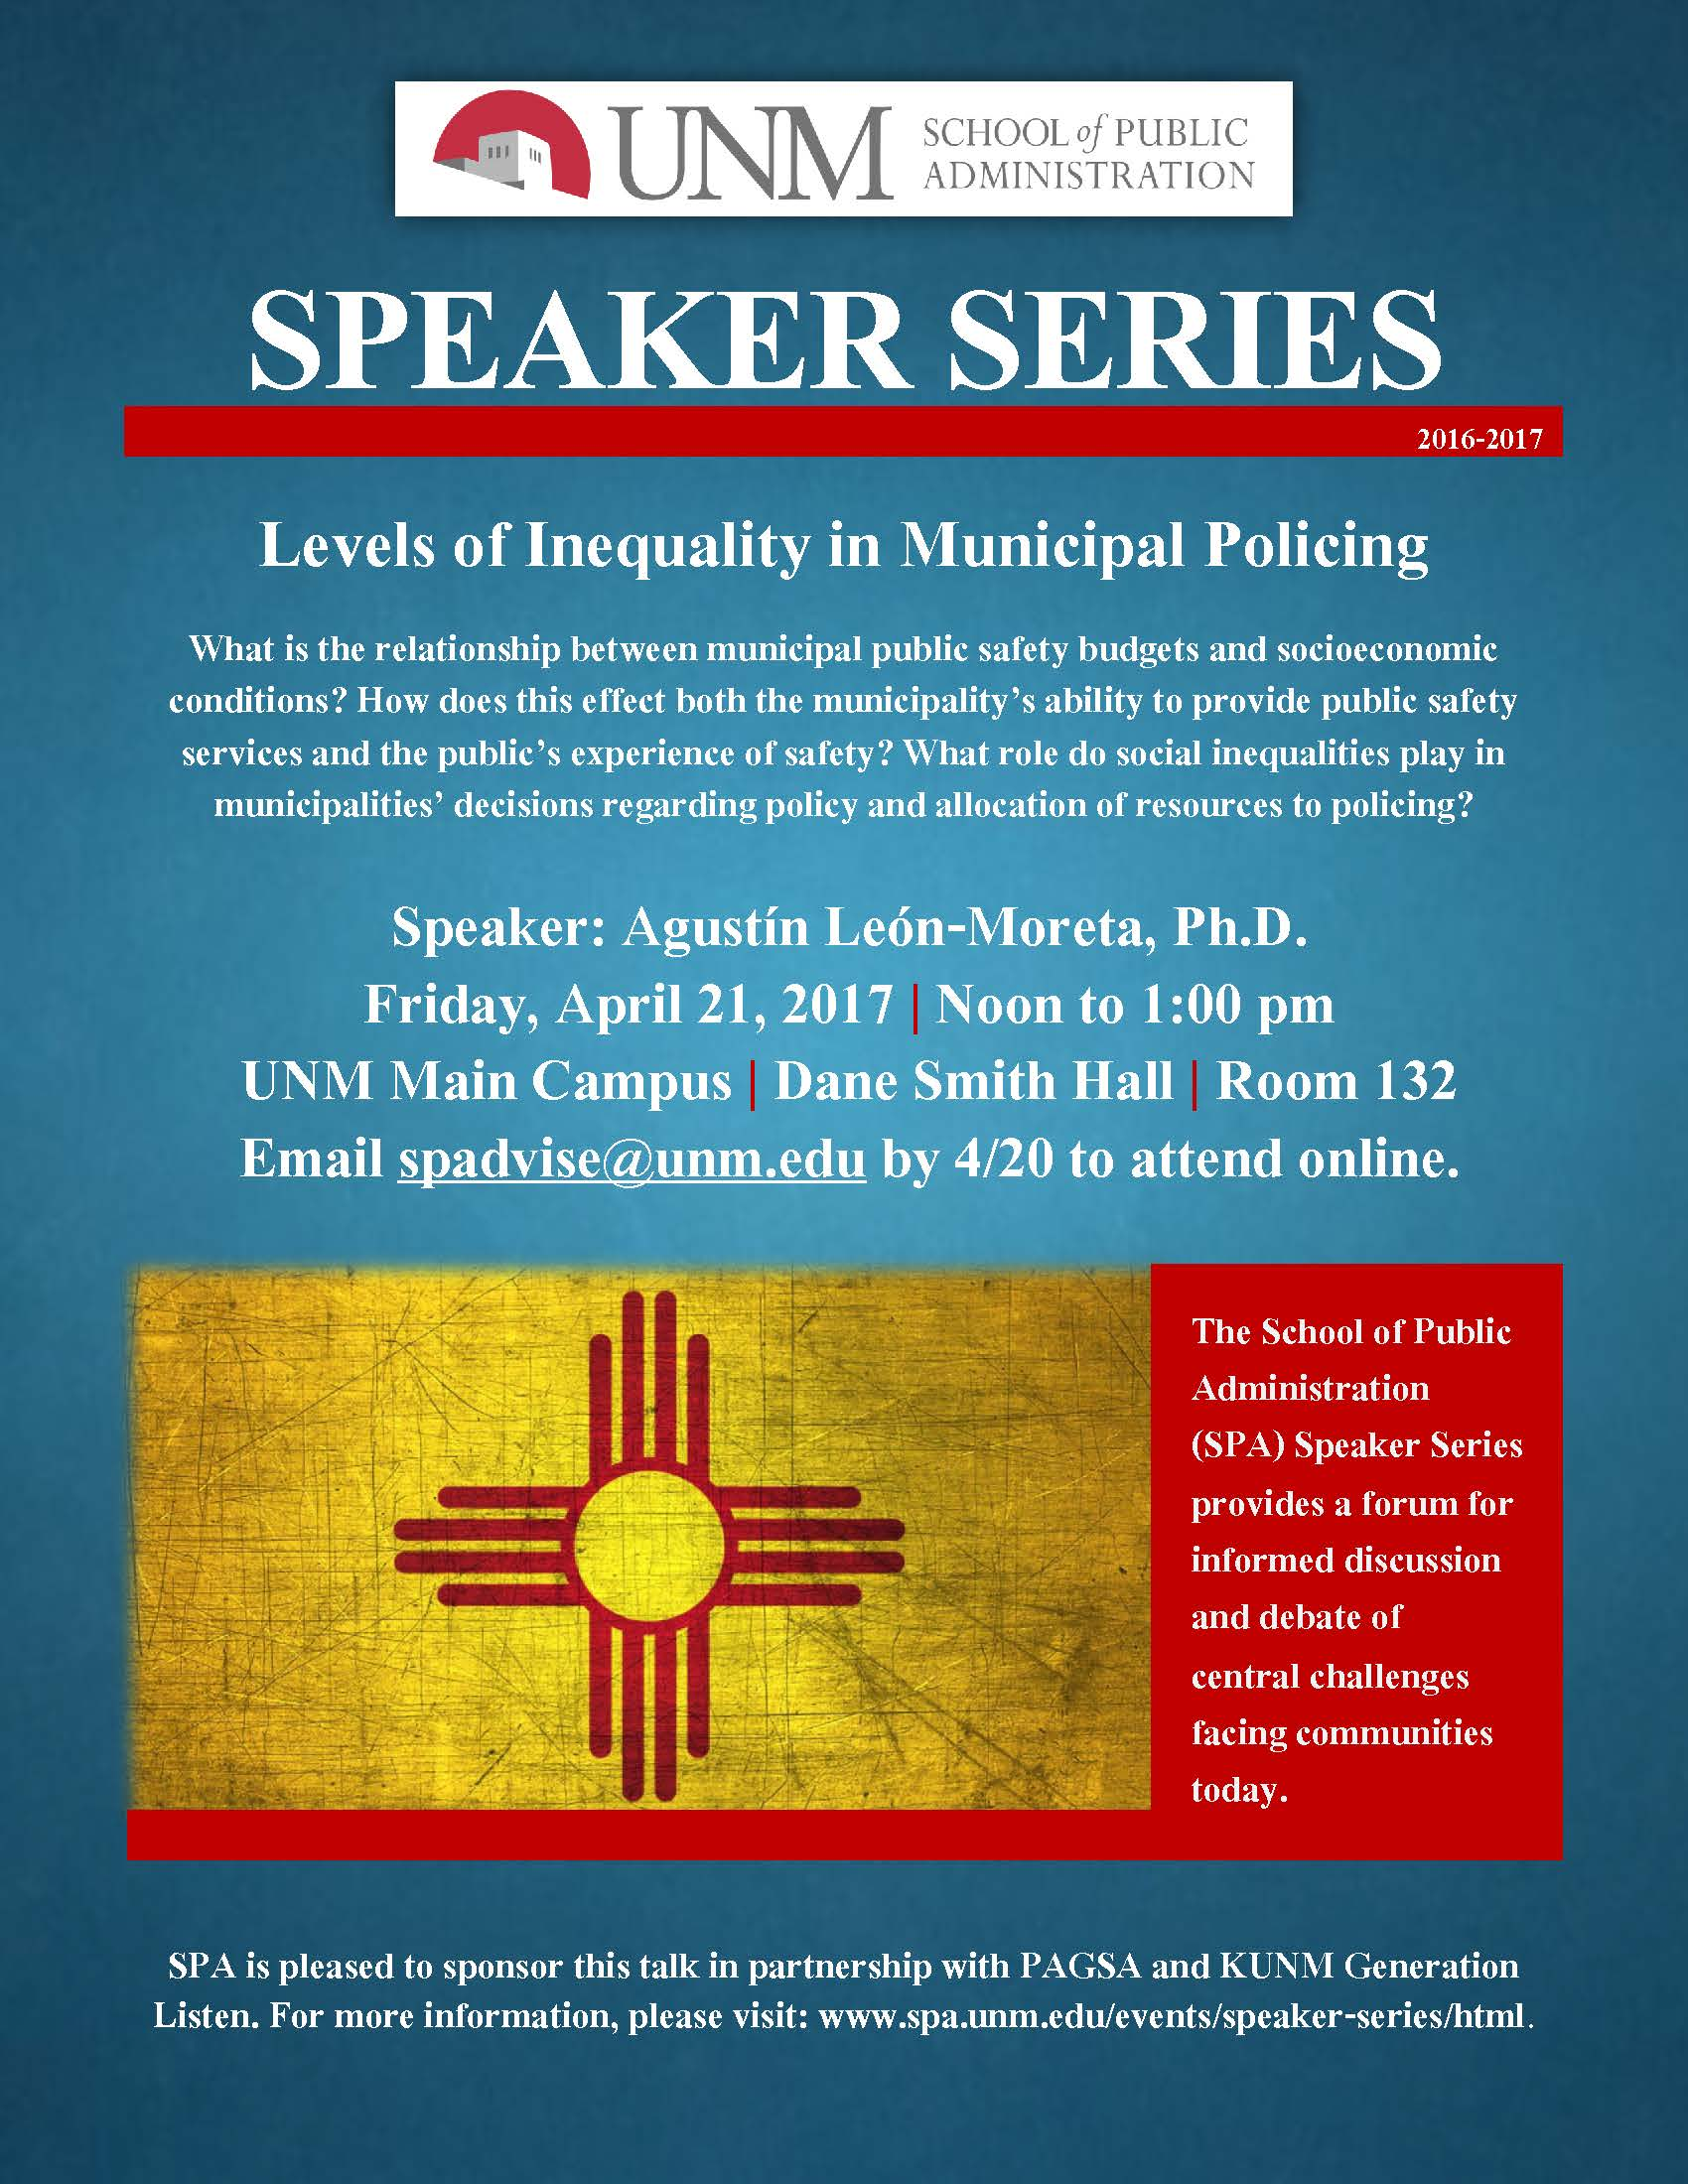 unm events calendar spa speaker series levels of inequality in